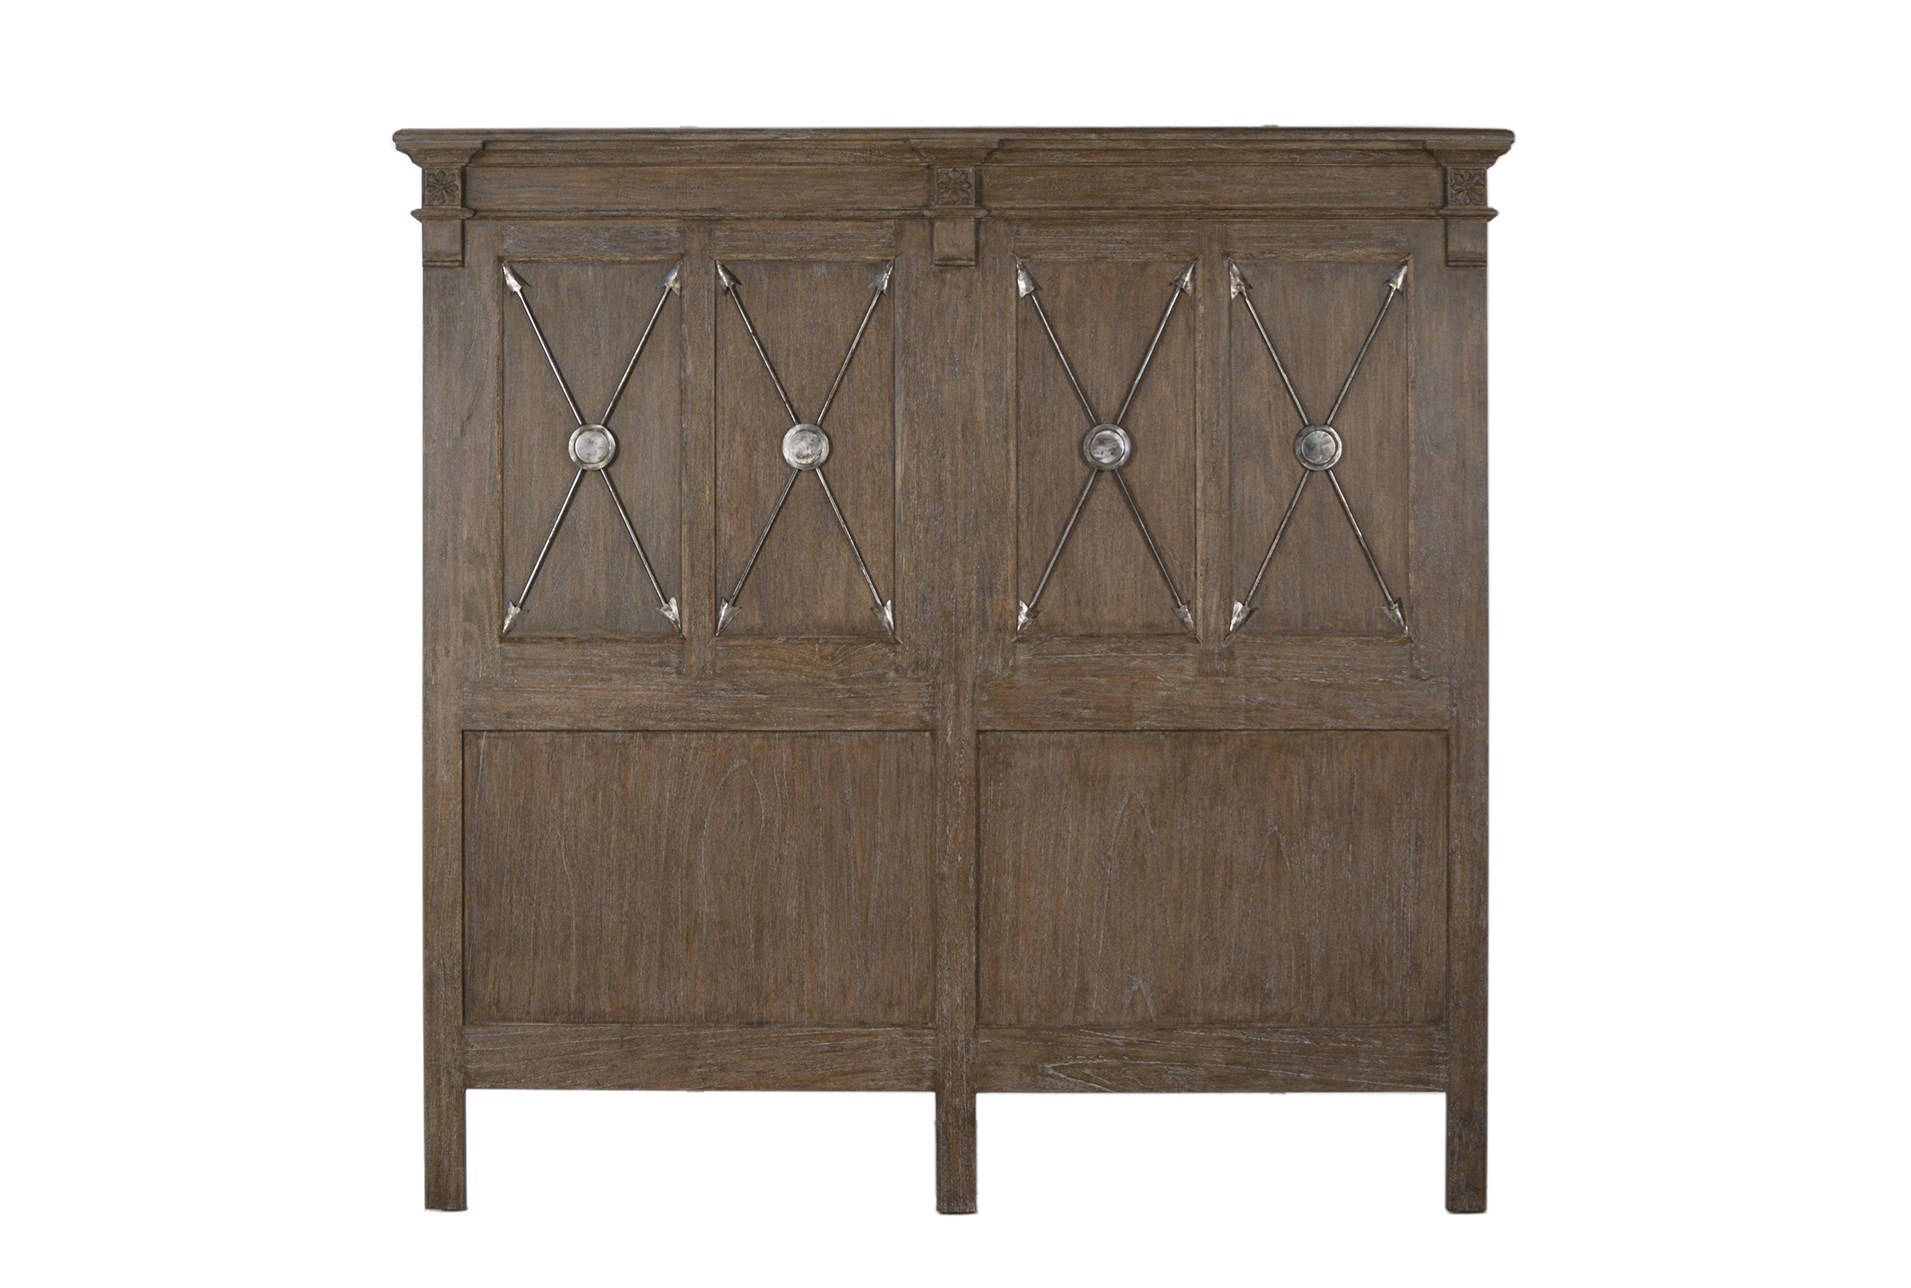 Natural Oak Wood Queen Headboard Qty 1 Has Been Successfully Added To Your Cart